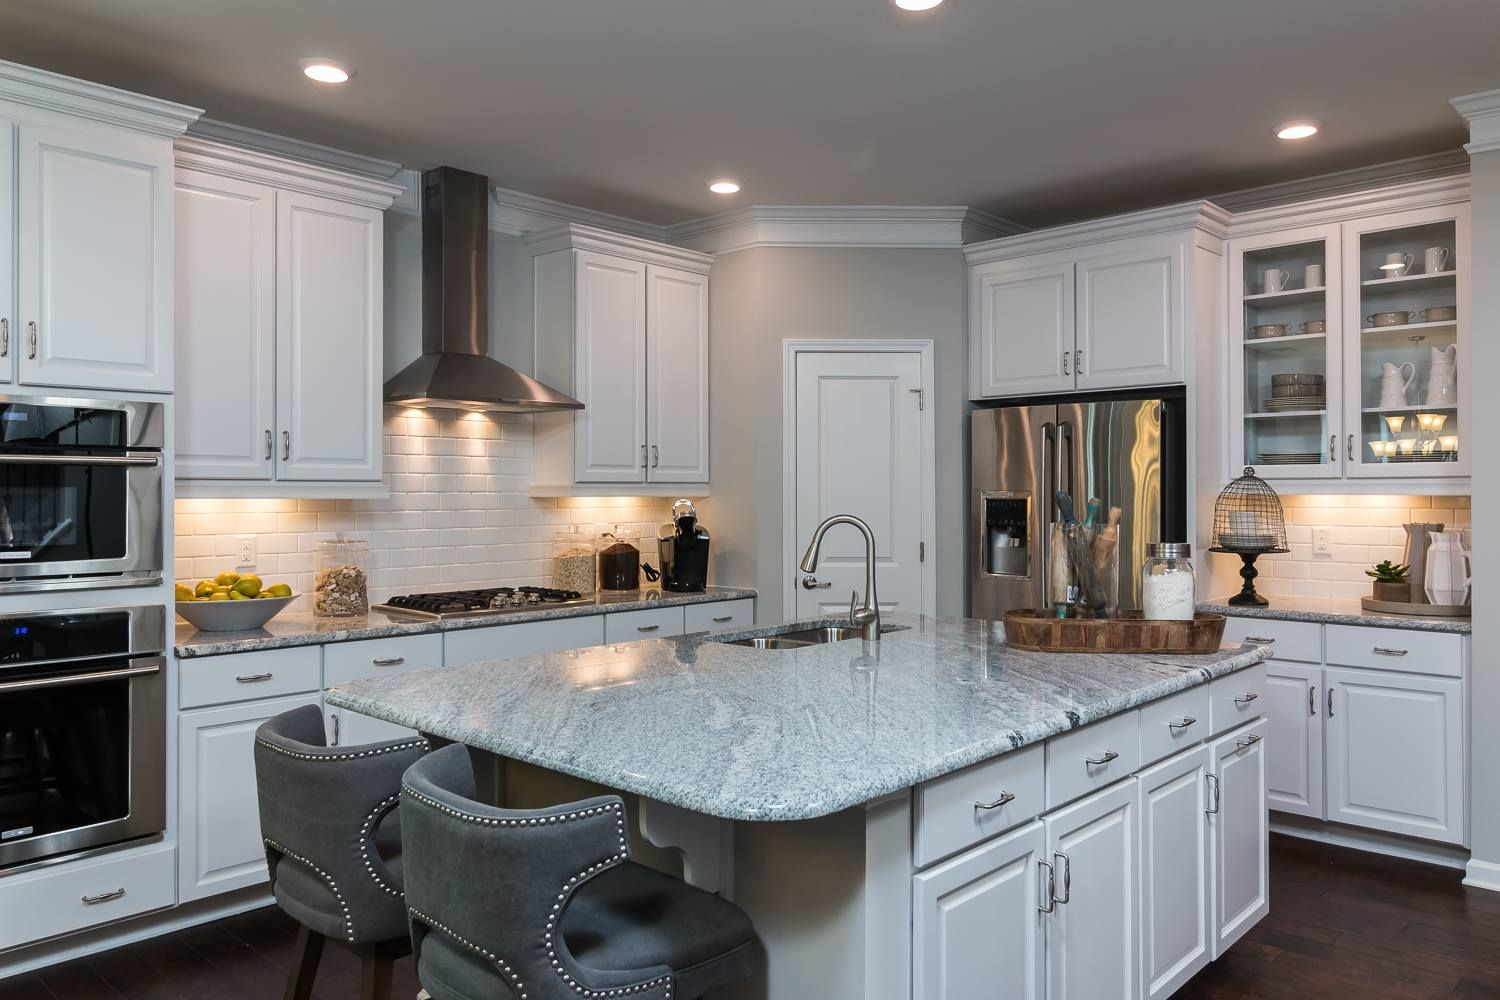 What Would You Be Eating If You Had This Kitchen With Unique Seating With Images Home Home Kitchens